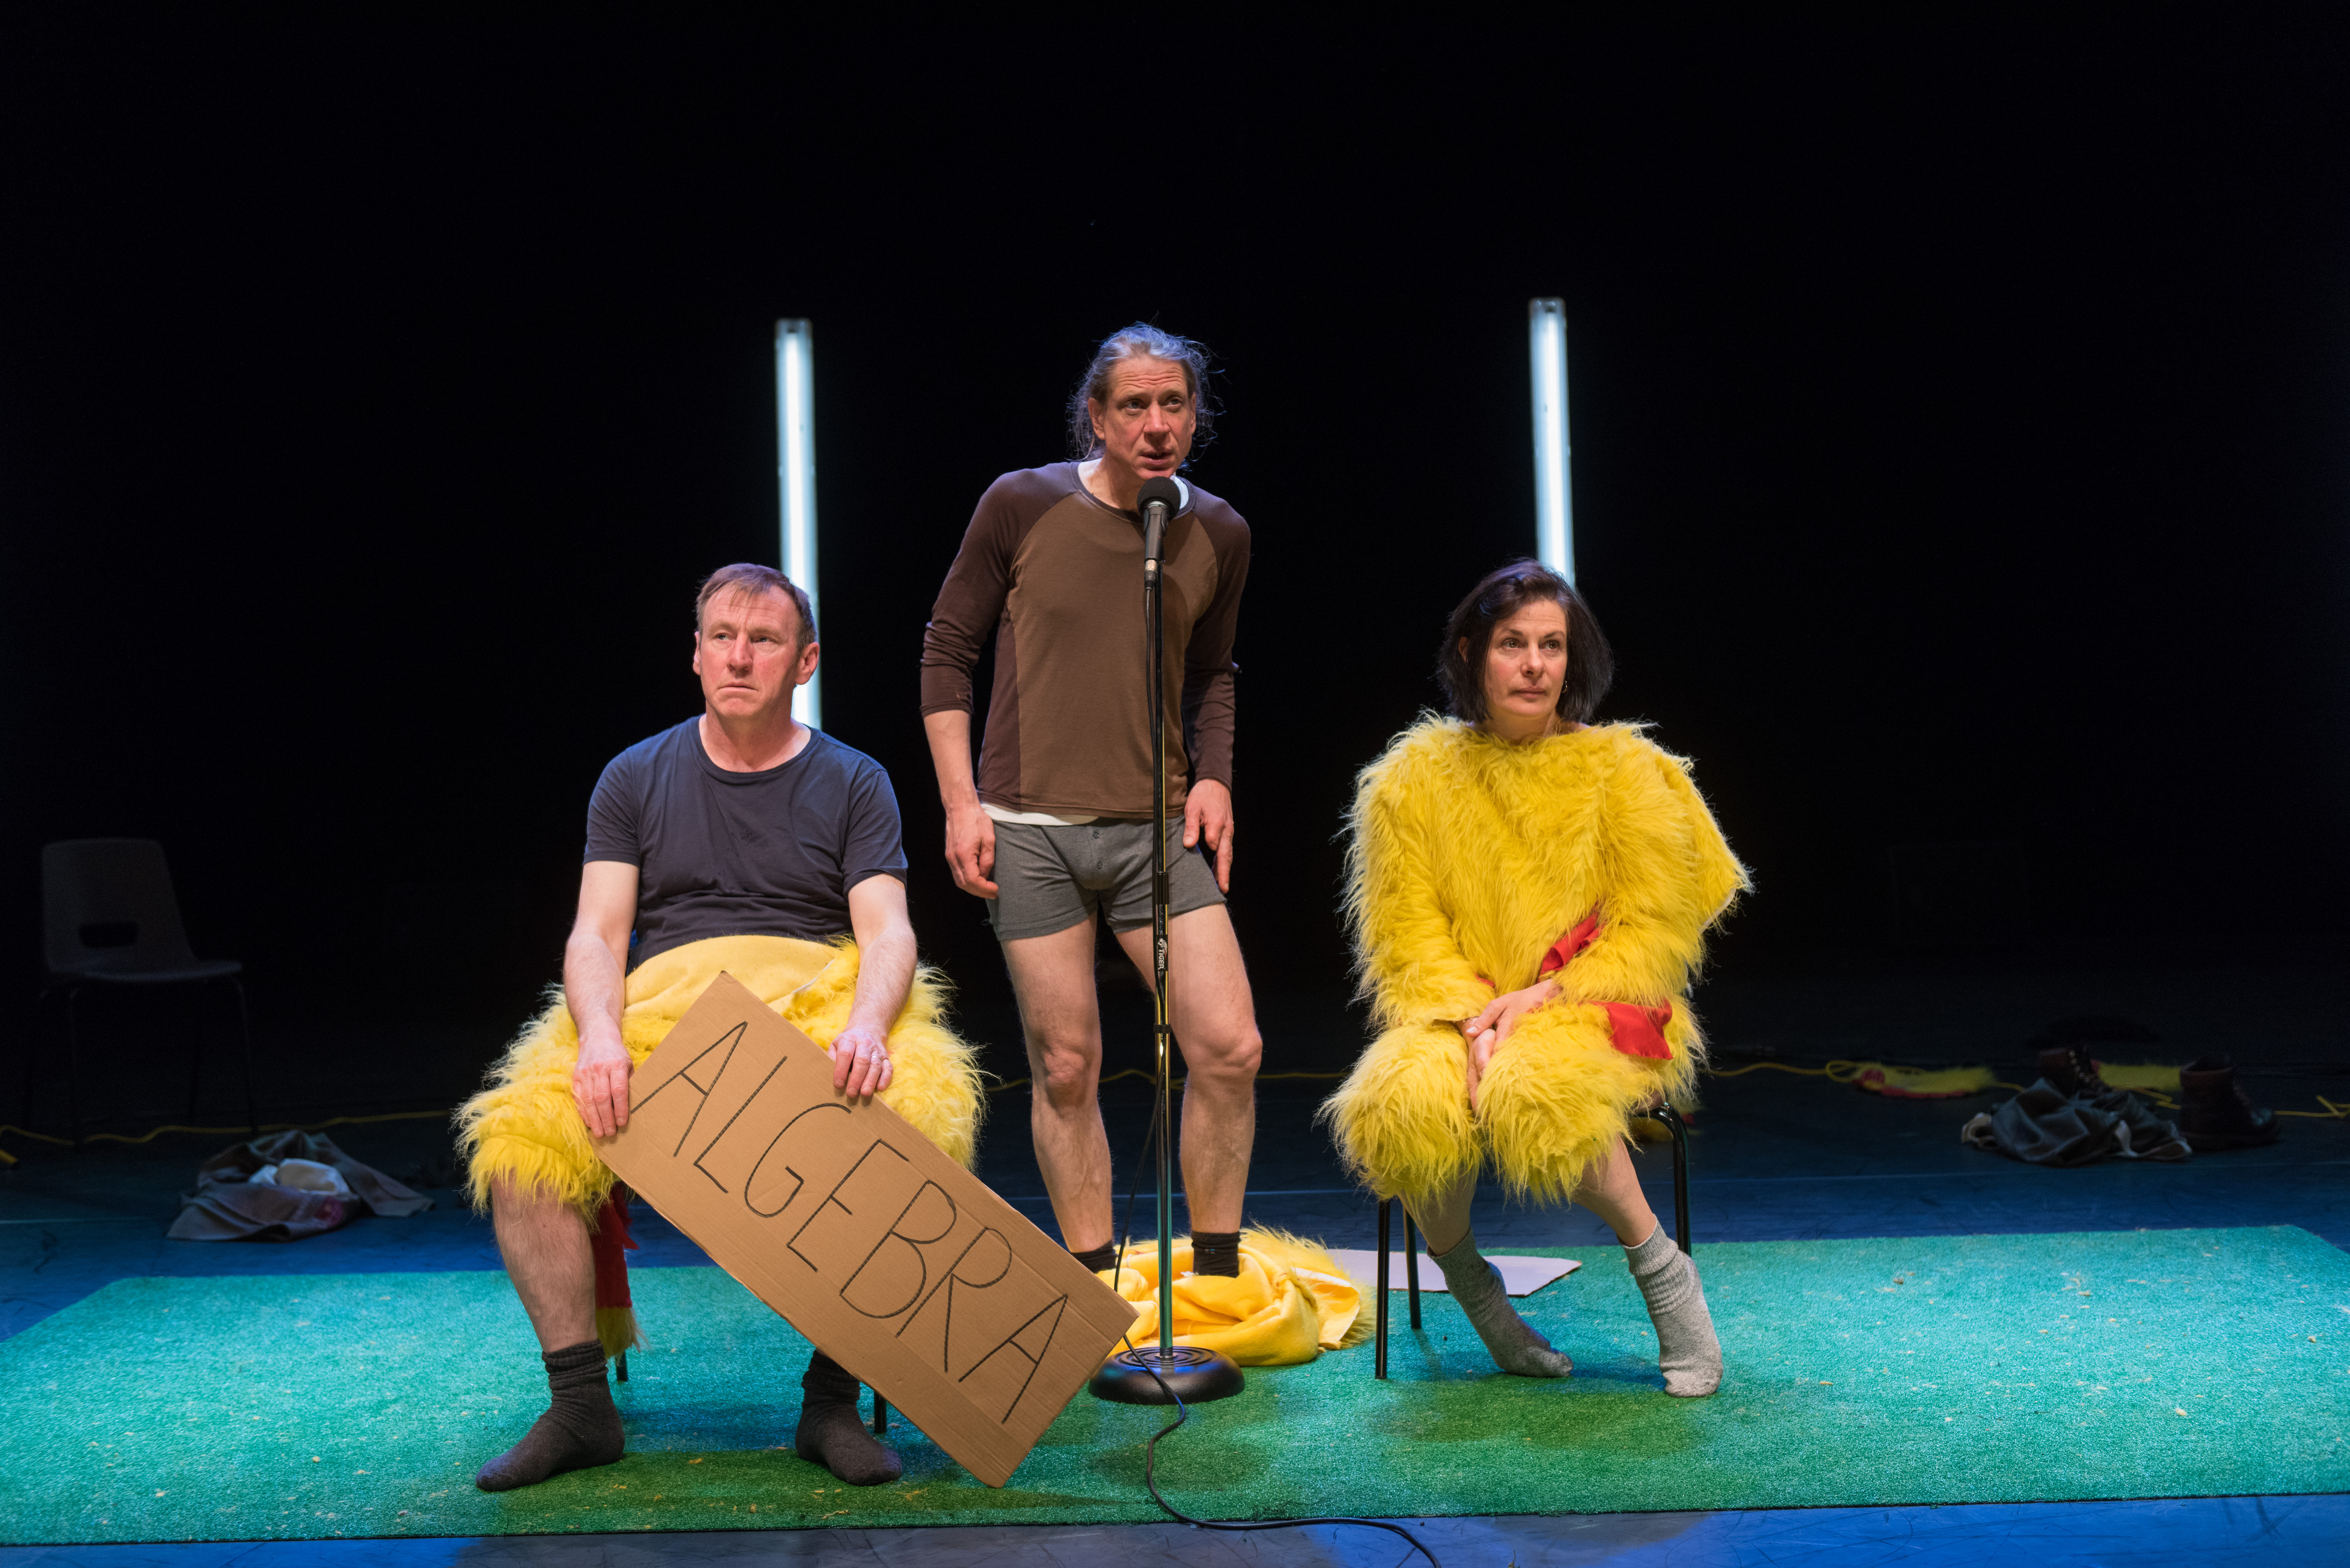 three performers onstage, one is holding a cardboard sign that says Algebra